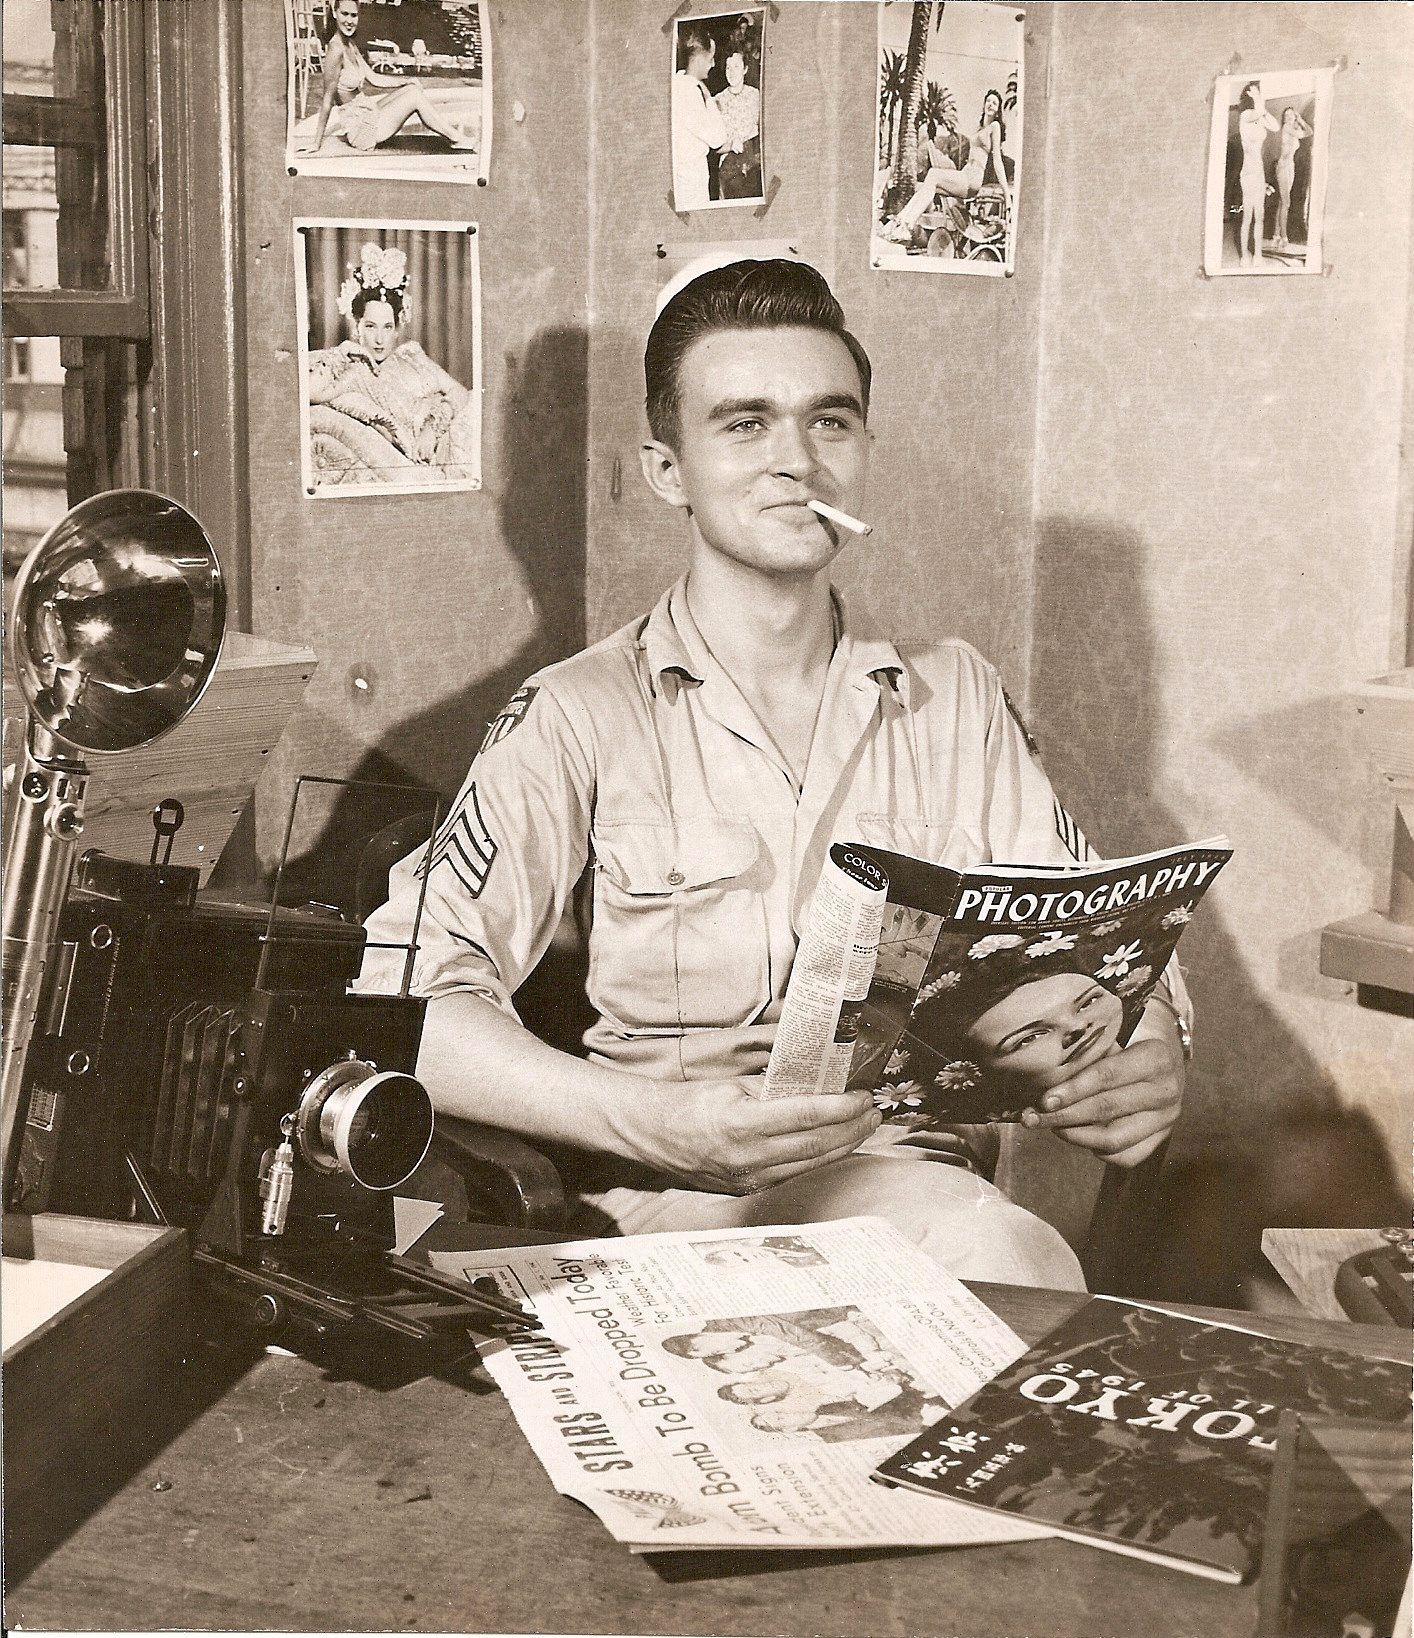 During occupa- tion of Japan, Sgt. Martin Scheeler, a Buffalo native, became chief pho- tographer for the military news- paper Stars and Stripes in Tokyo.